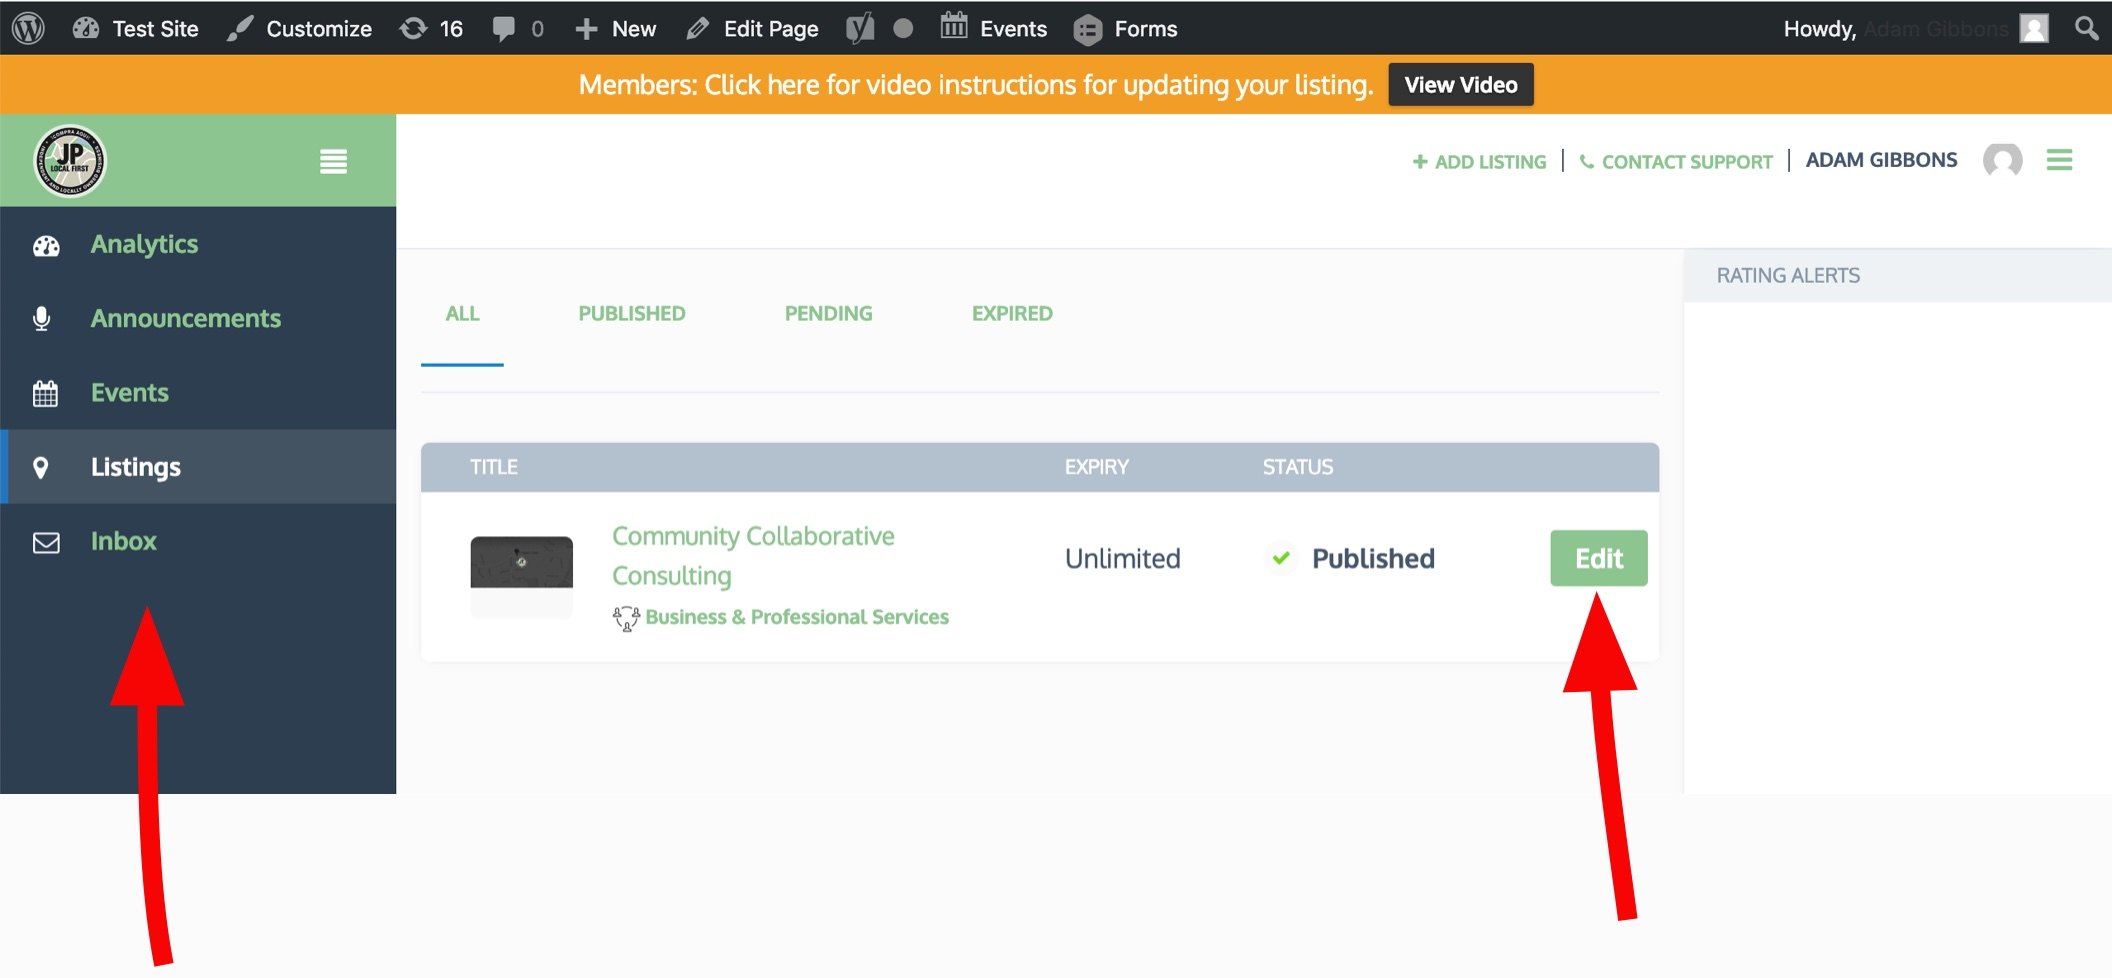 View of the Manage Listings page for Members ONLY